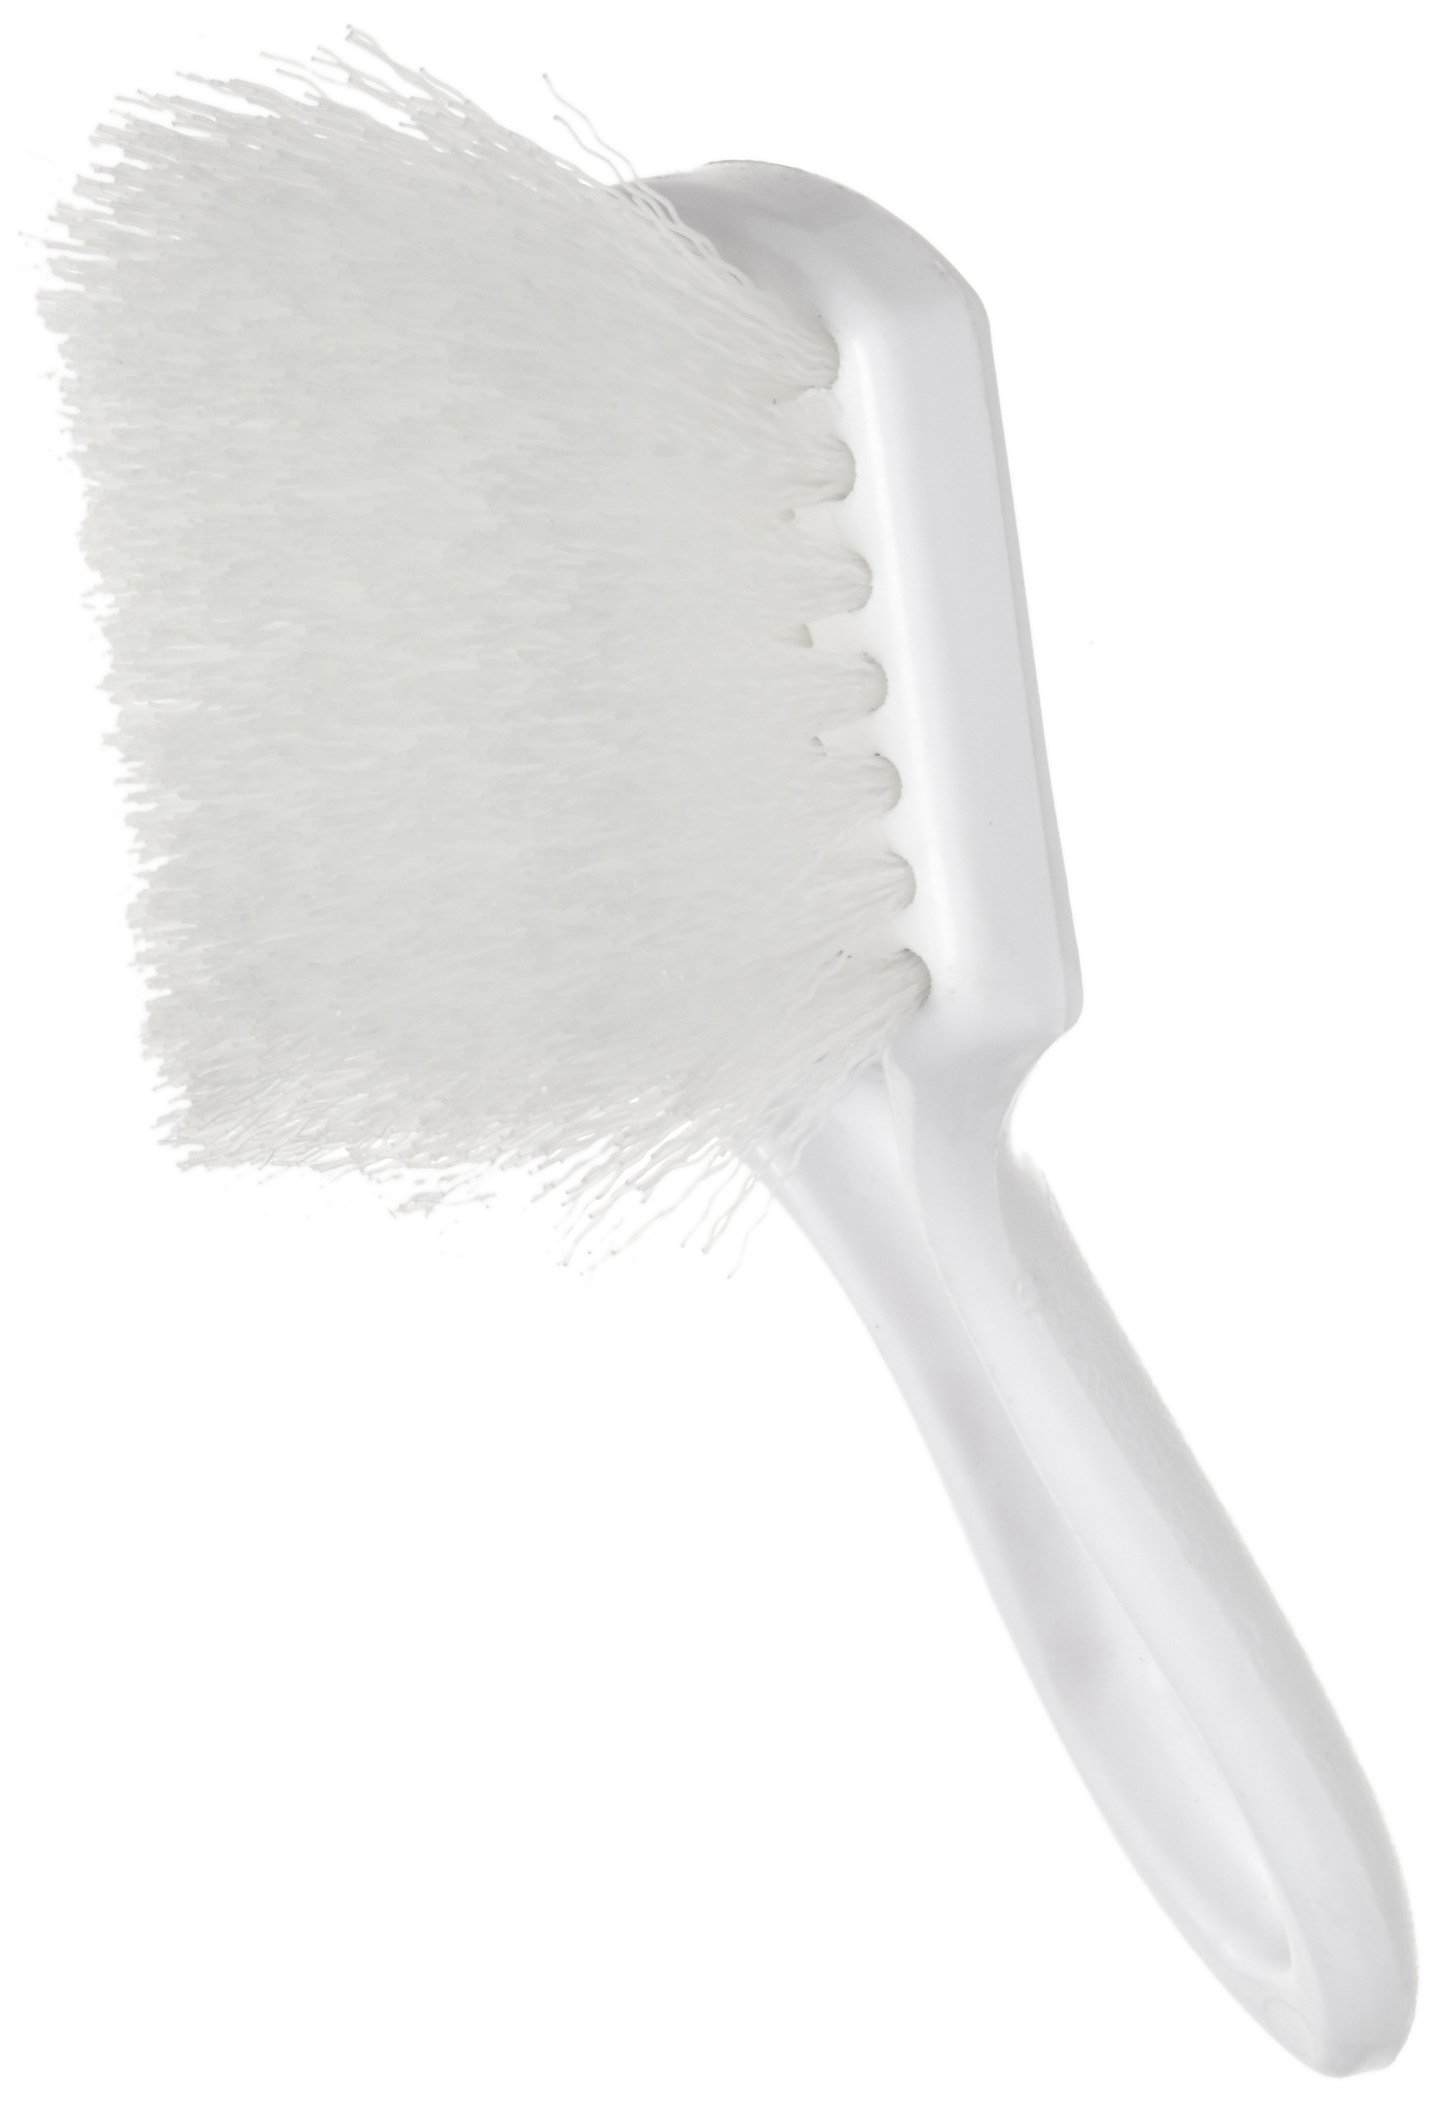 Weiler 44416 Nylon Utility Scrub Brush with Long Plastic Handle, 1-1/2'' Head Width, 8'' Overall Length